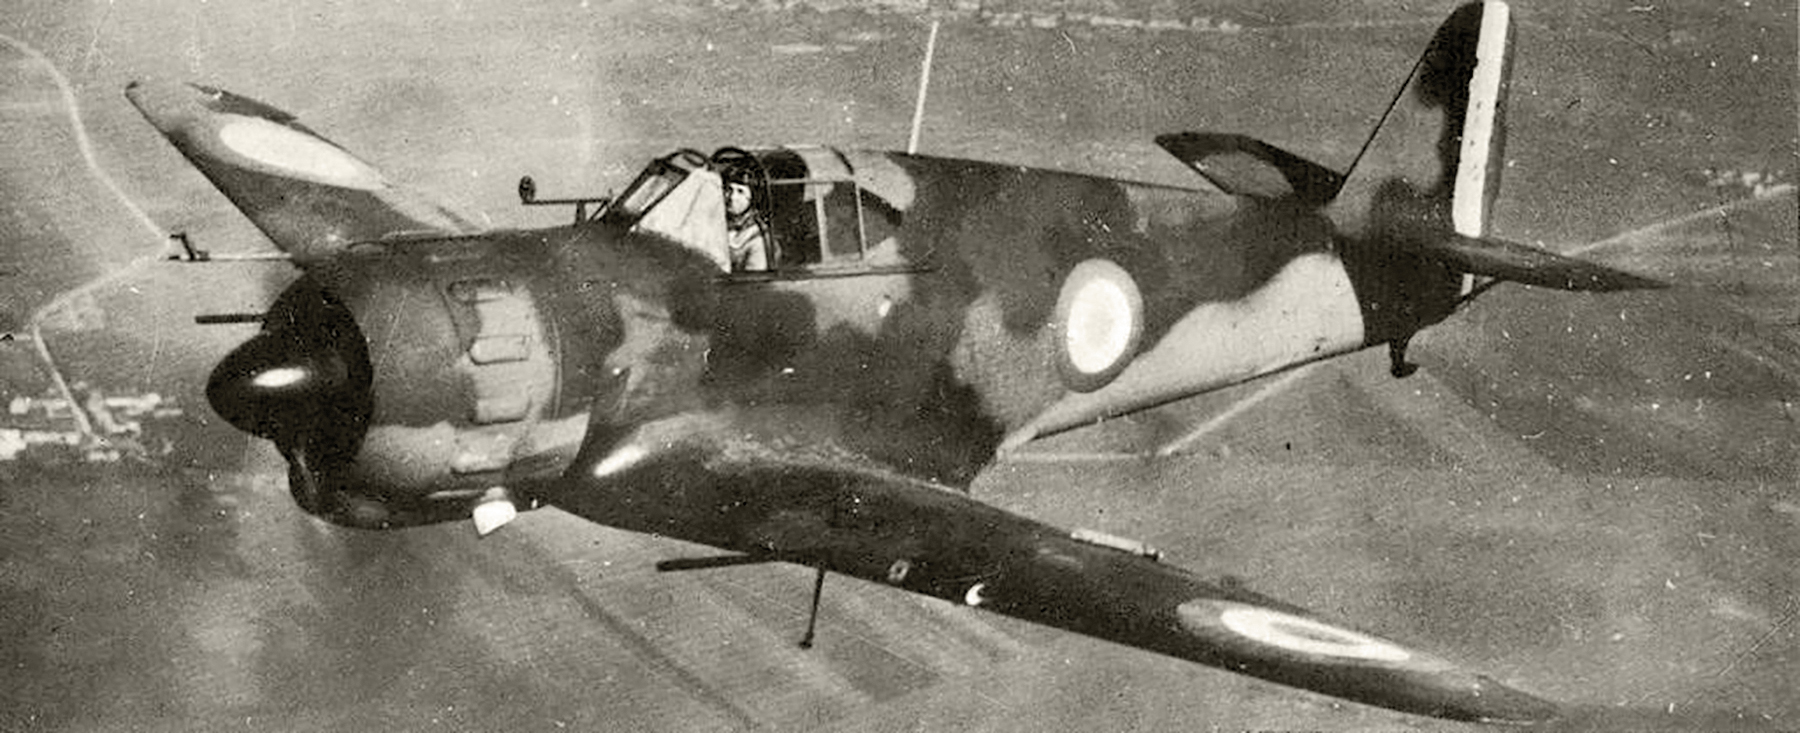 French Airforce Bloch MB 152 No501 Battle of France May 1940 ebay 02